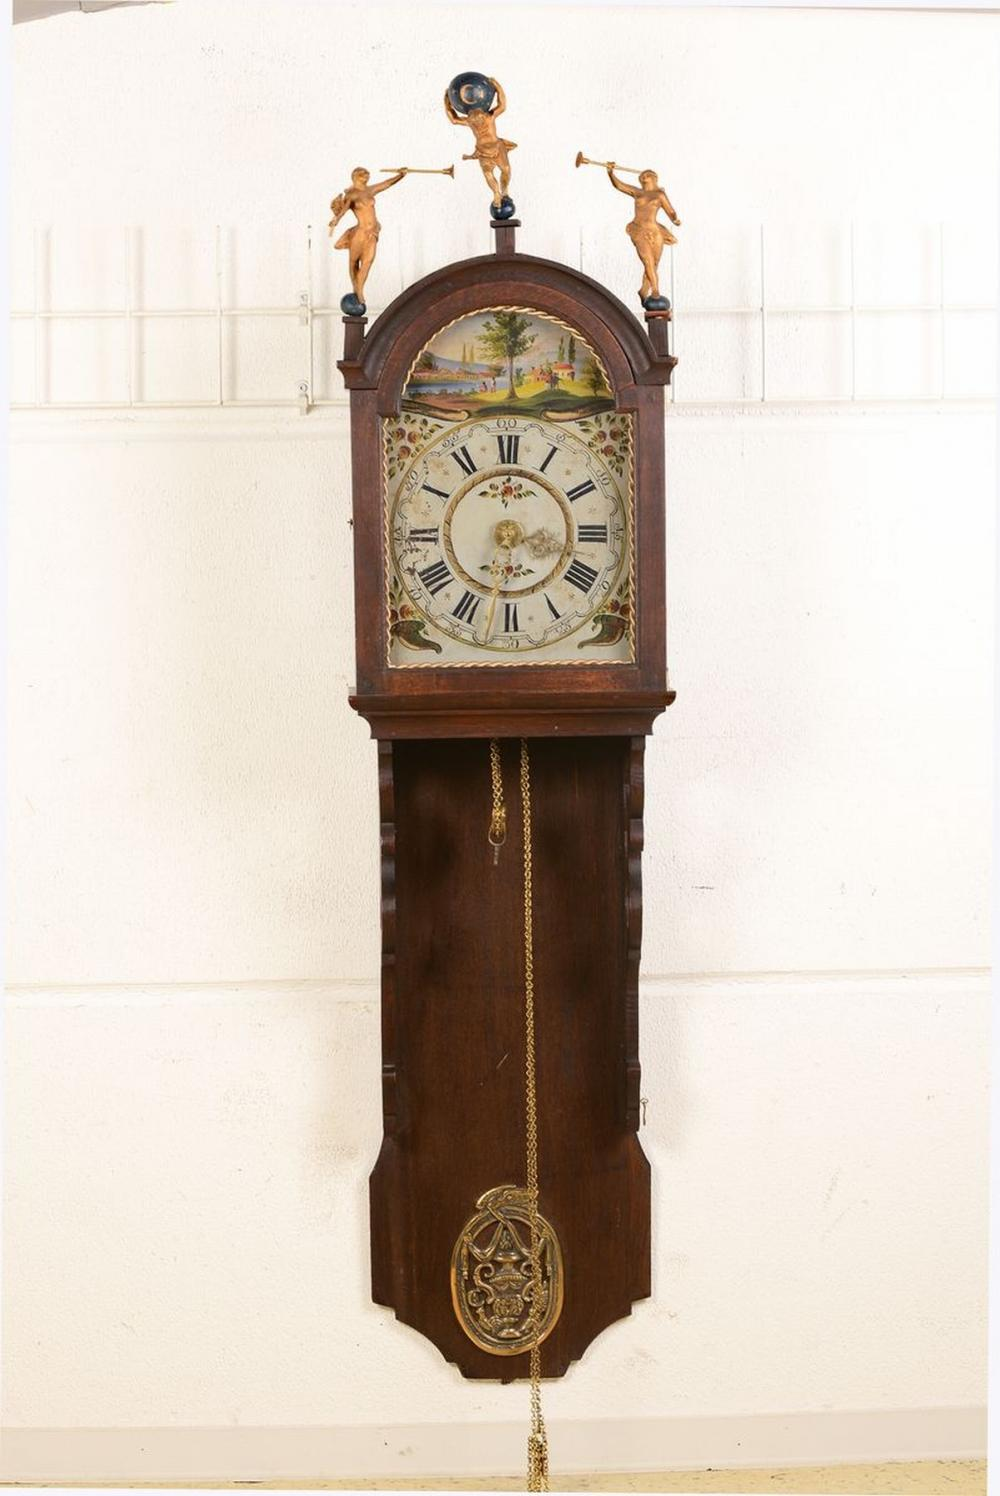 Frisian Staartclock, Middle of 20th c., wood housing with